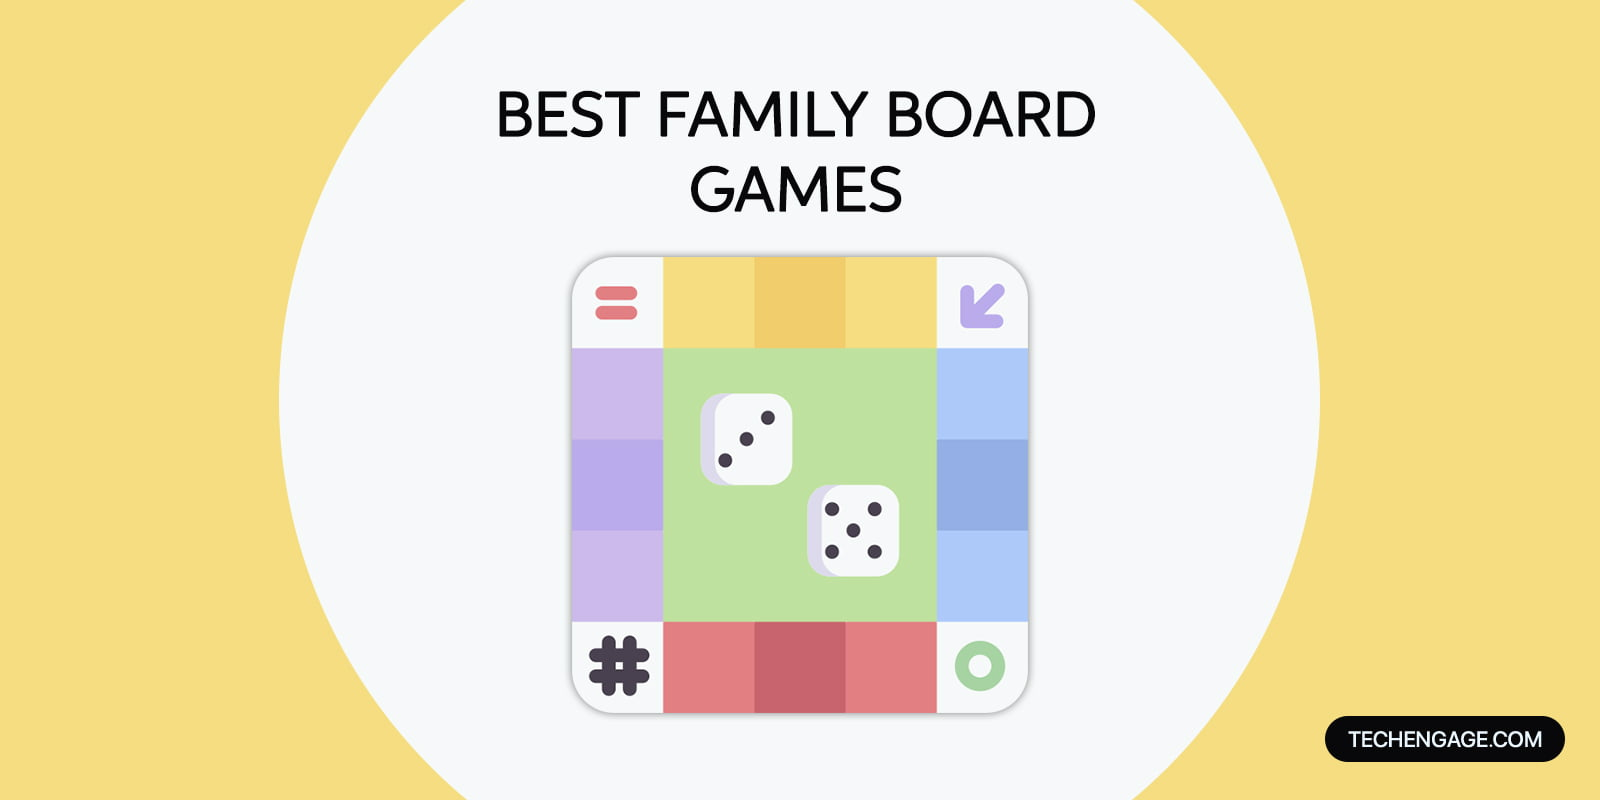 Best family board games to buy on Amazon for 2021